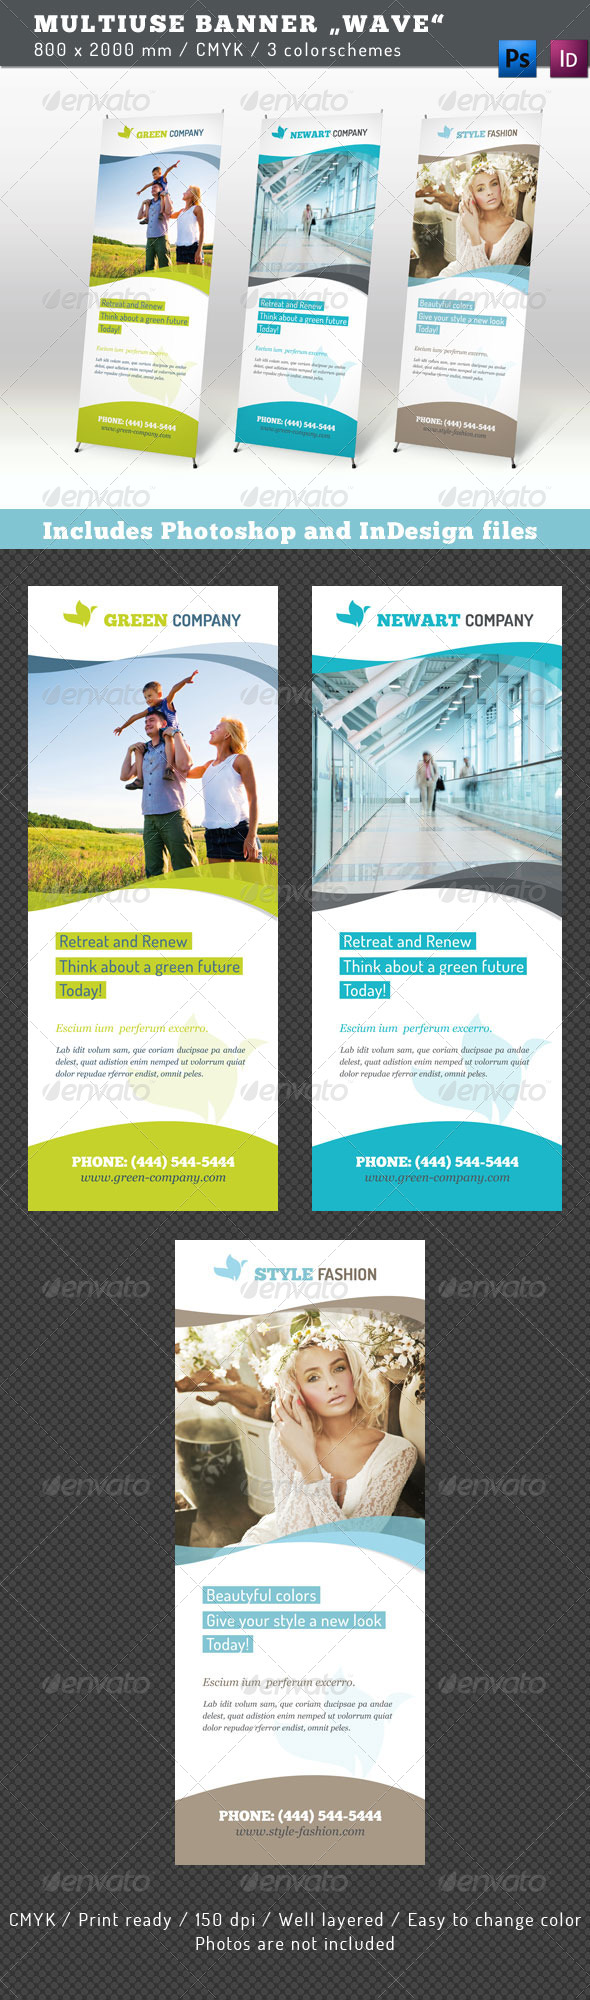 Multiuse Roll-up Banner Wave - Signage Print Templates